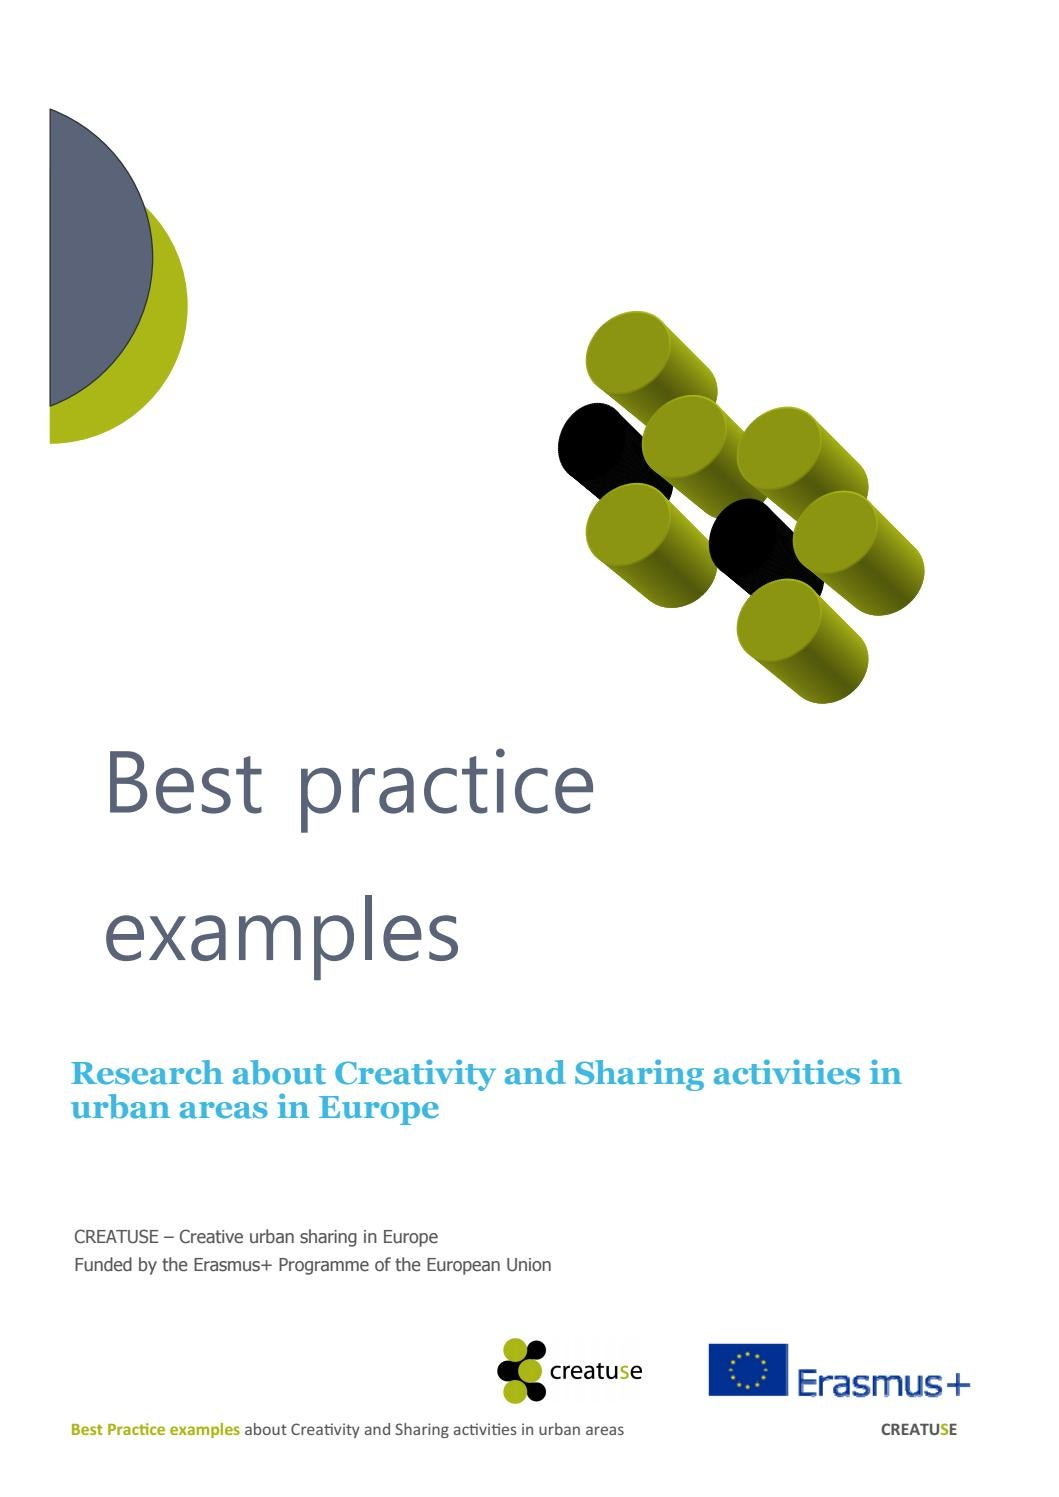 CREATUSE Best Practice Examples  Research about creativity